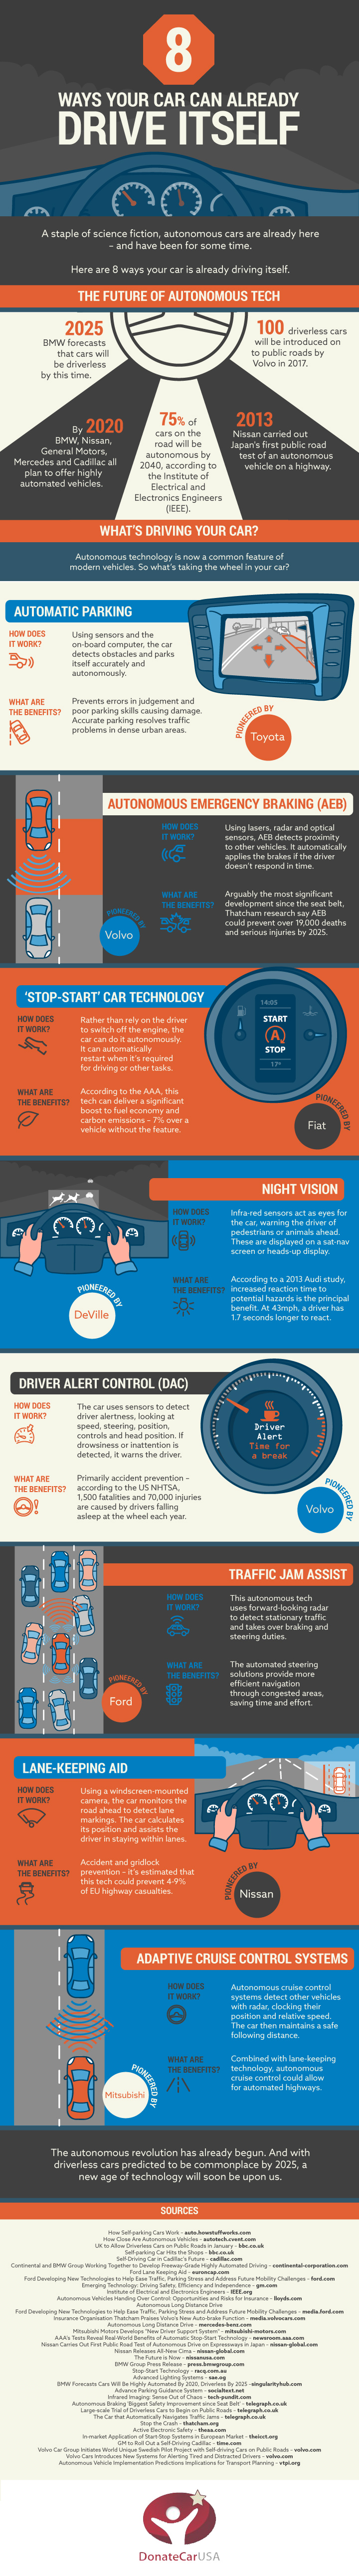 8-ways-your-can-can-already-drive-itself